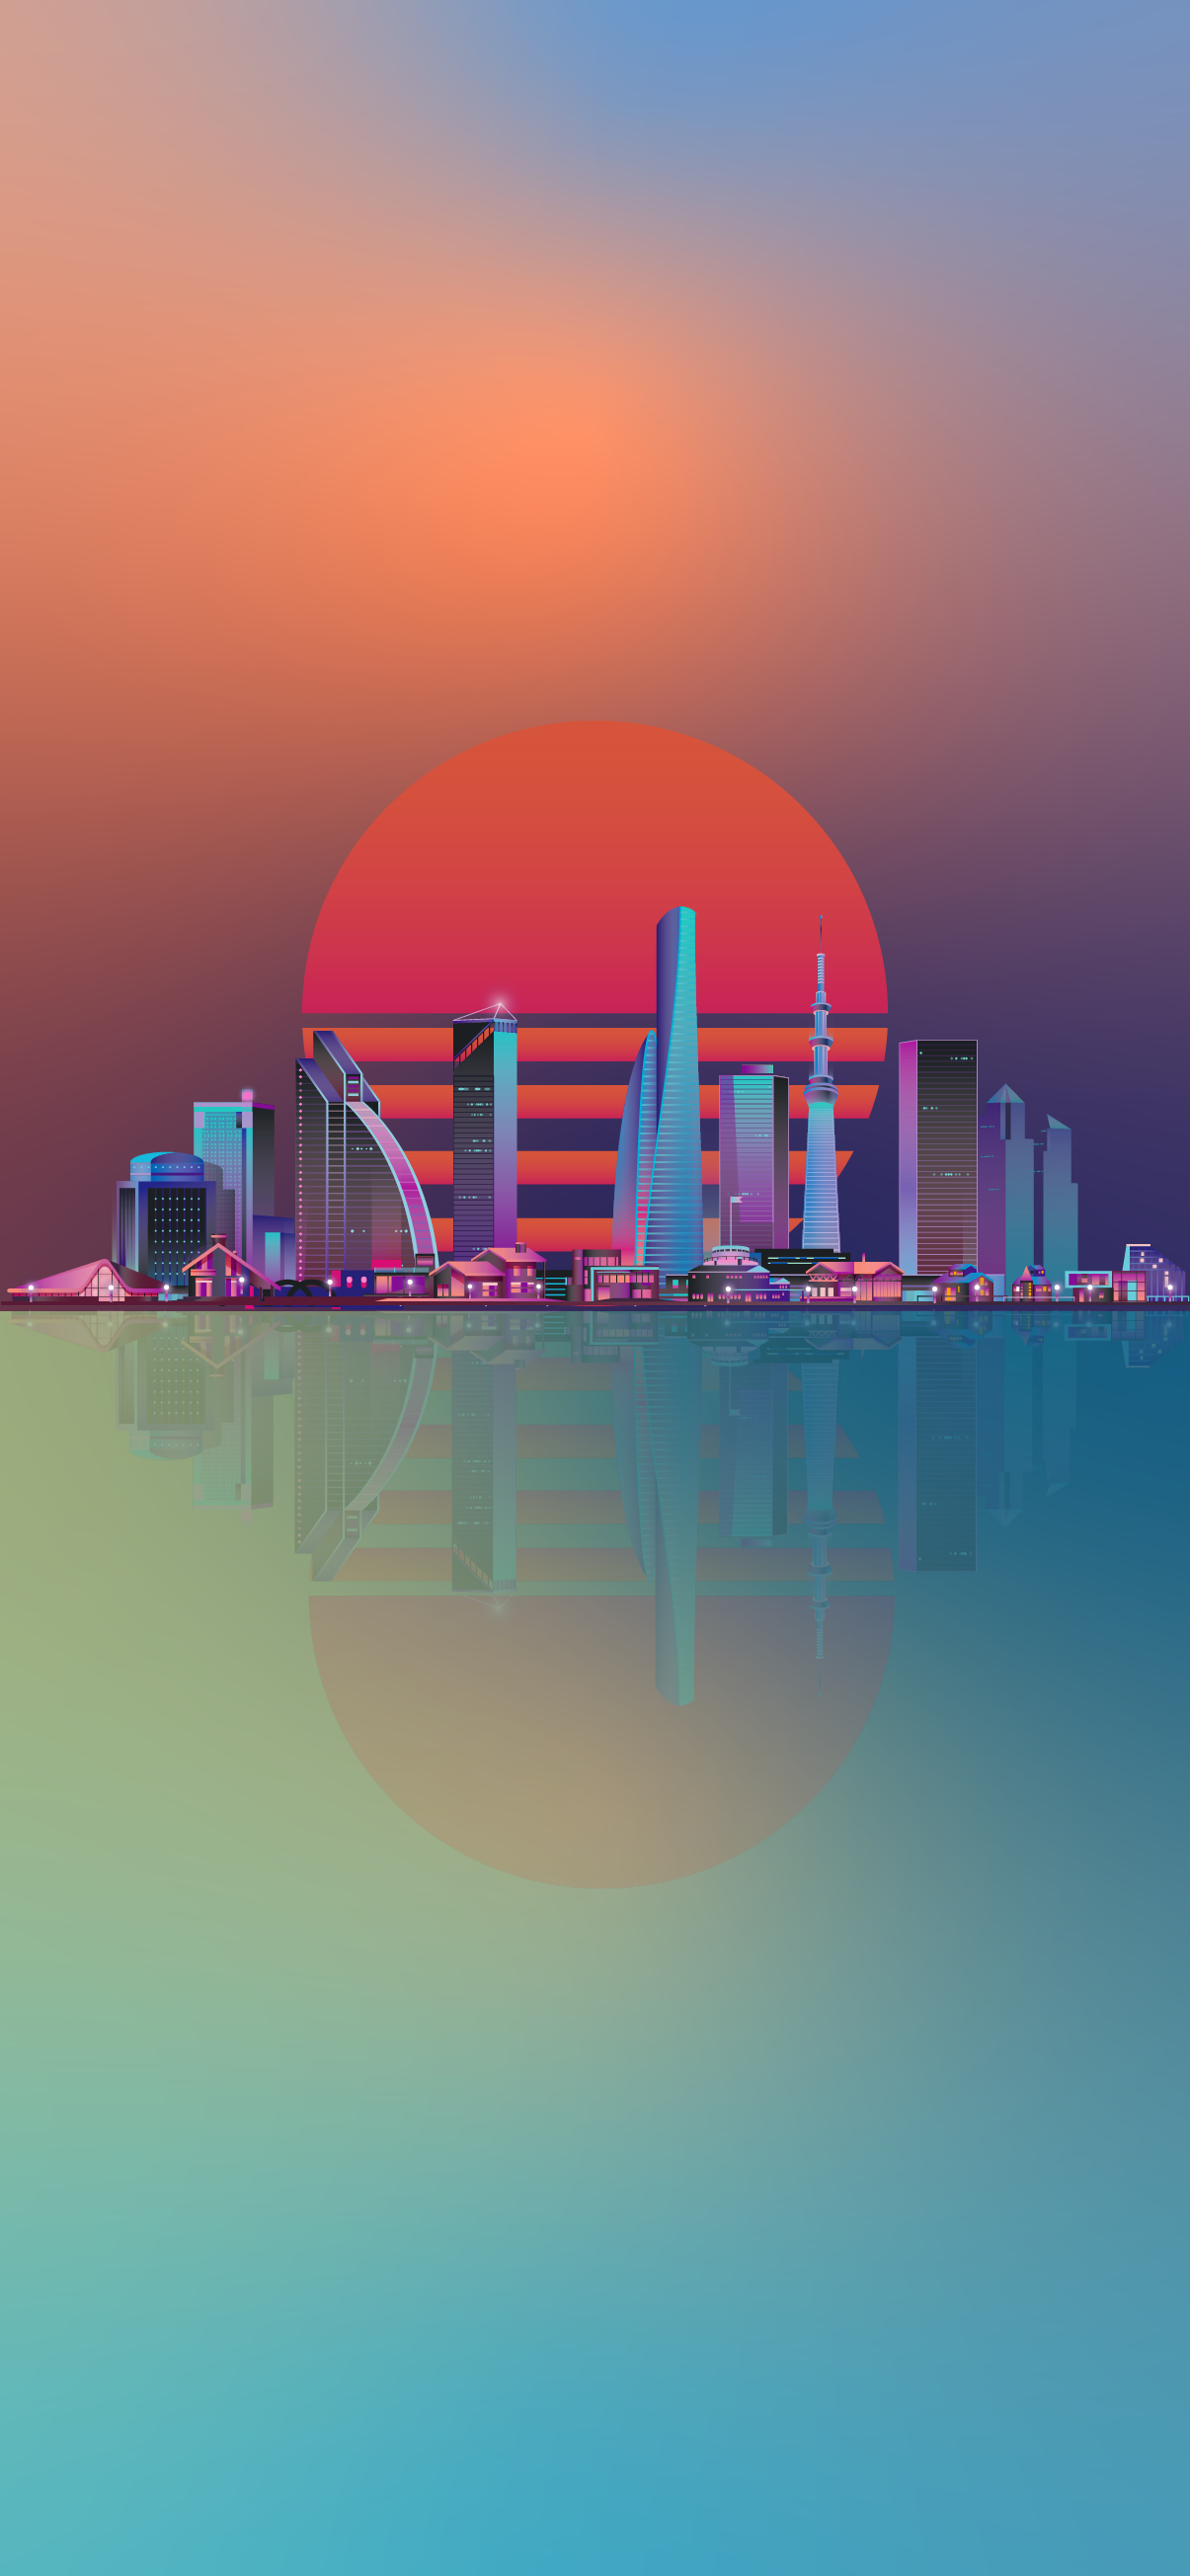 Cool Phone Wallpapers Synthwave City Wallpaperize Phone Wallpapers